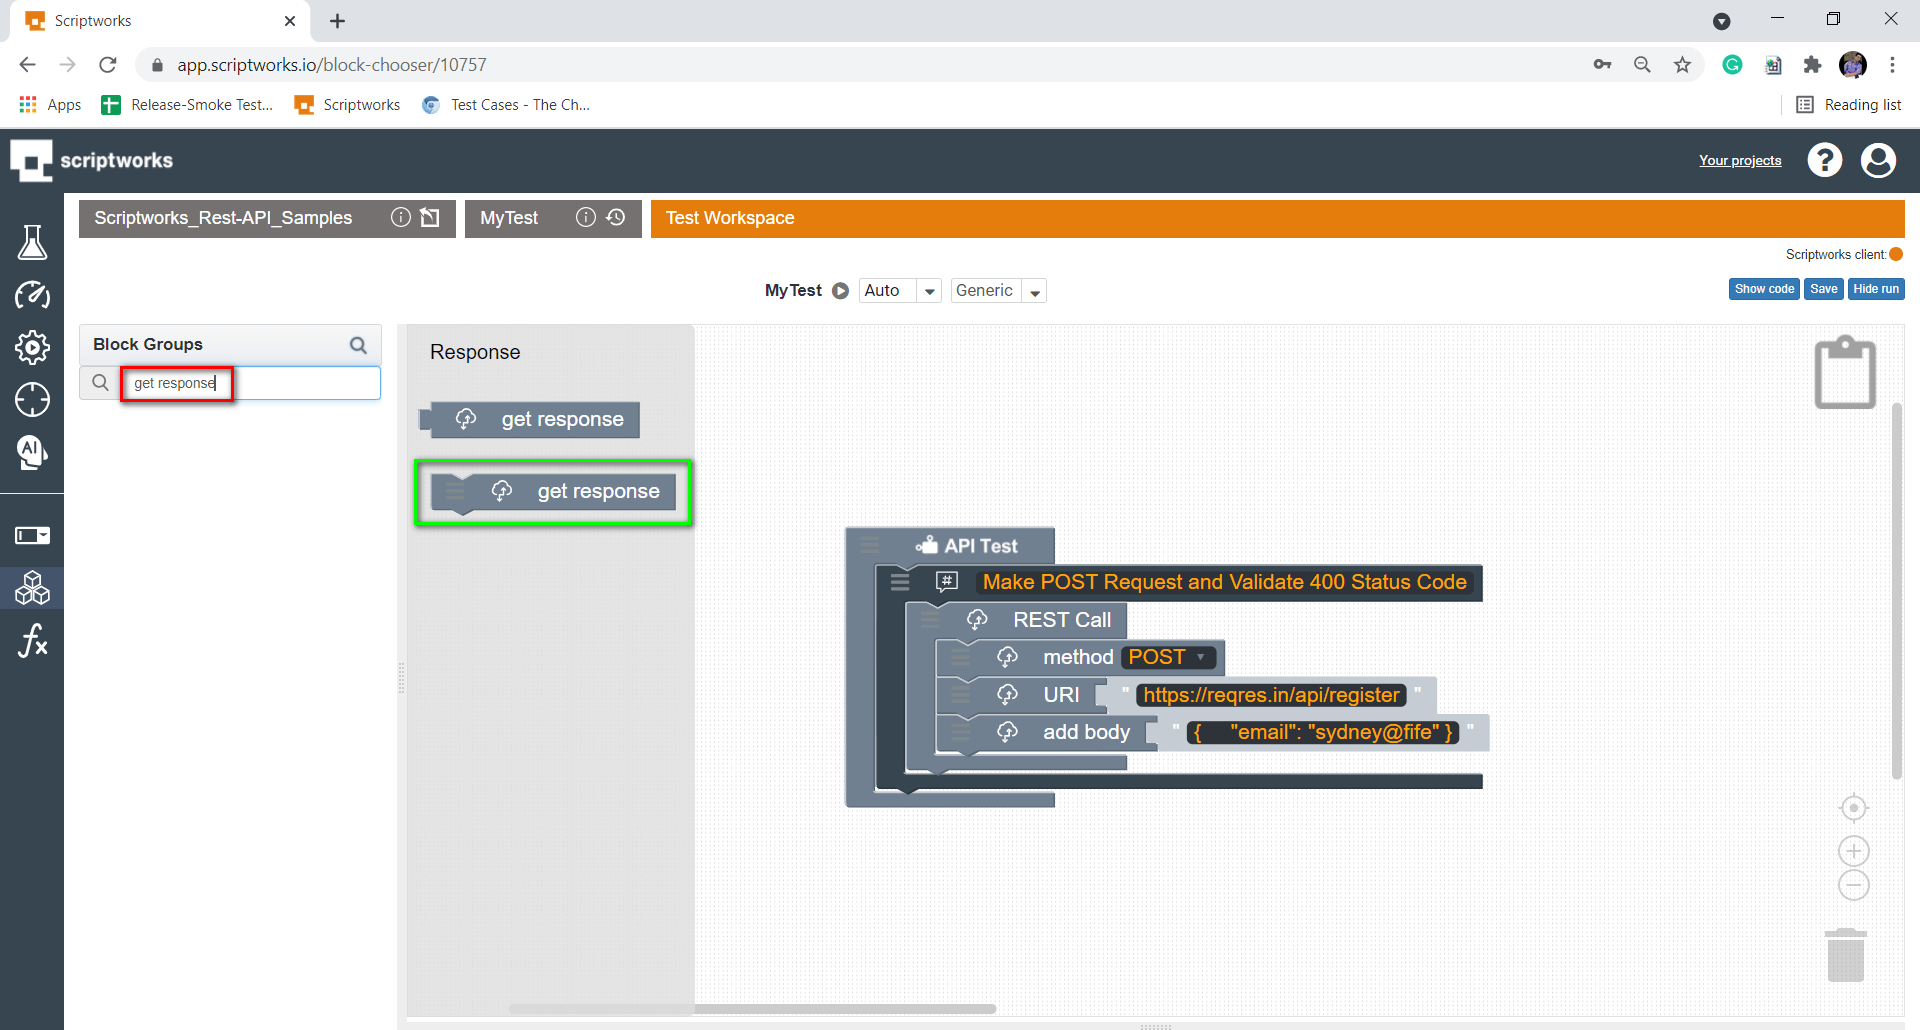 Search for get response block from the left hand side panel